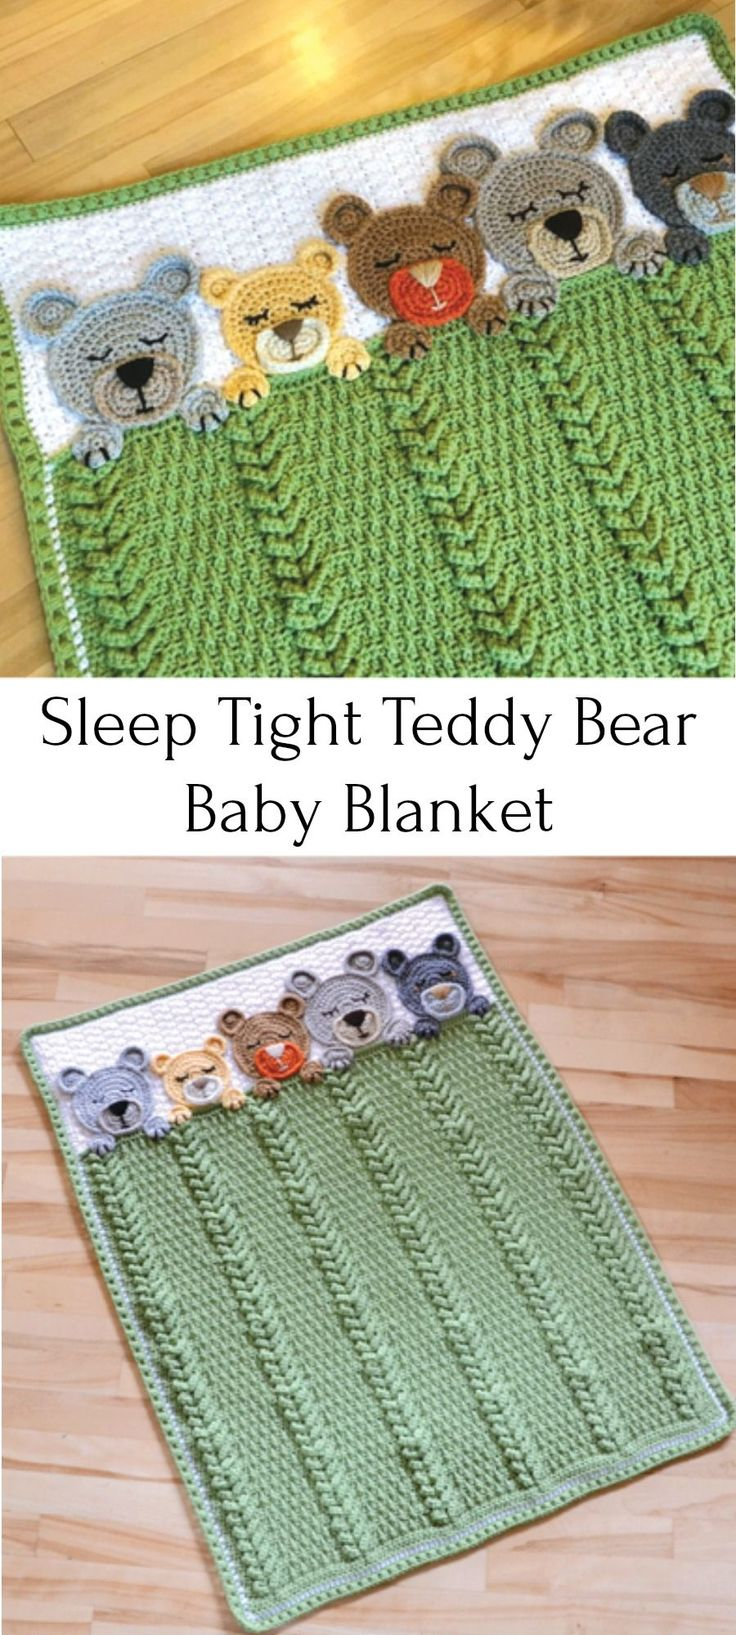 I love this crochet baby blank. I need to get this pattern and make… - #blusas #camisasmujer #blusa #modelosdeblusas #blusasmujer #blusasdemoda #blusaselegantes #blusasdeseda #blusasdefiesta #blusasdemujer #camisasdemujer #blusasdemoda #camisablancamujer #blusasdevestir #blusasparadama